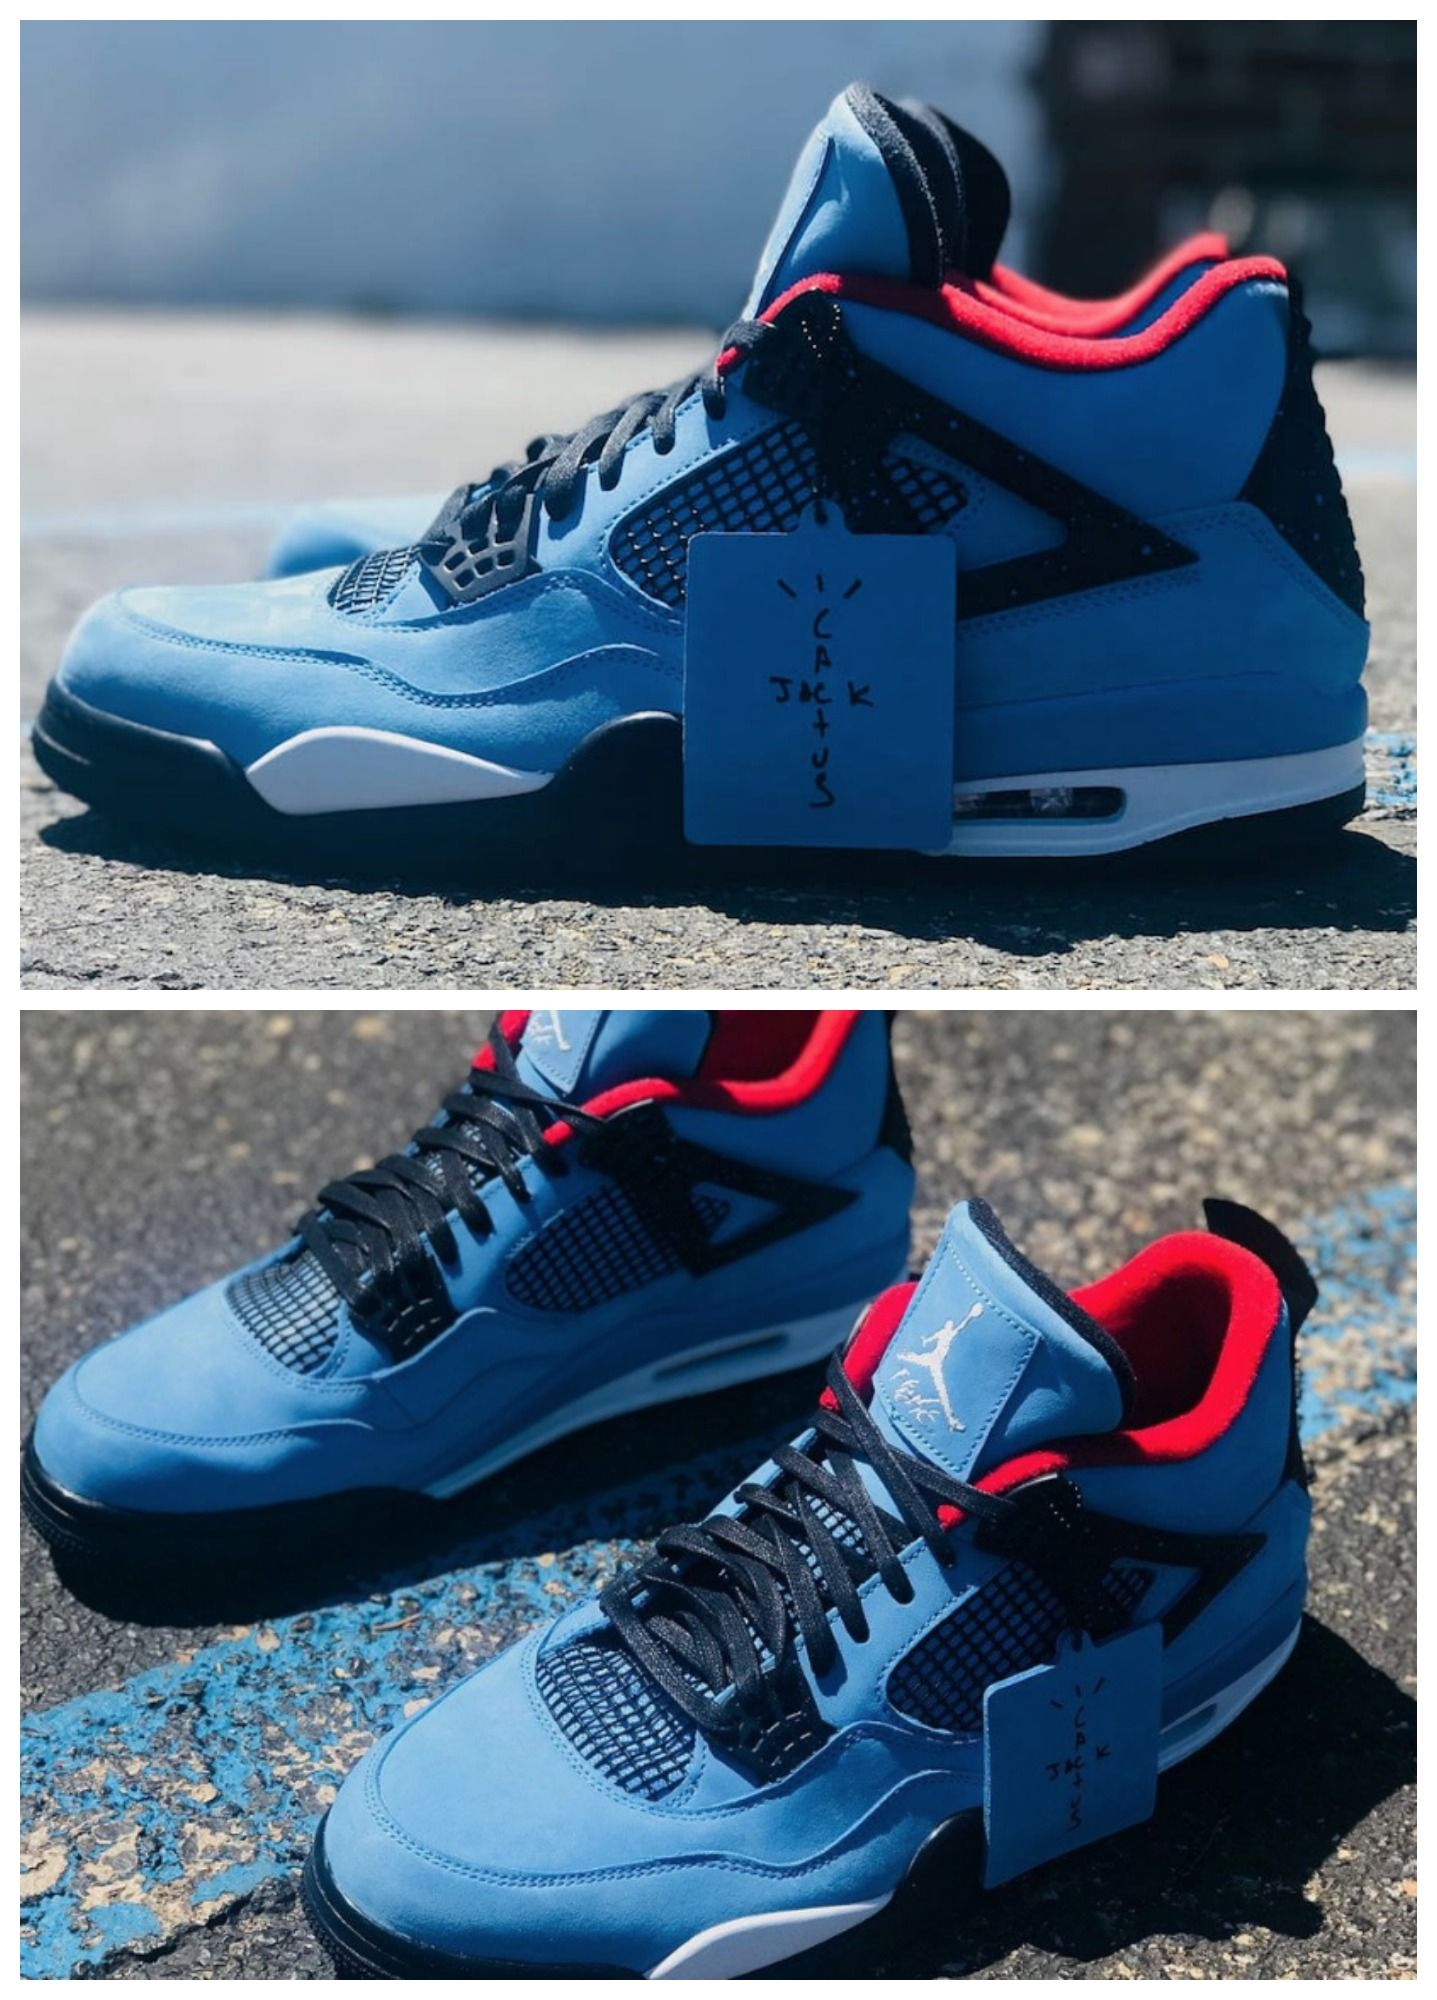 3e03cbea76b3 Travis Scott x Air Jordan 4